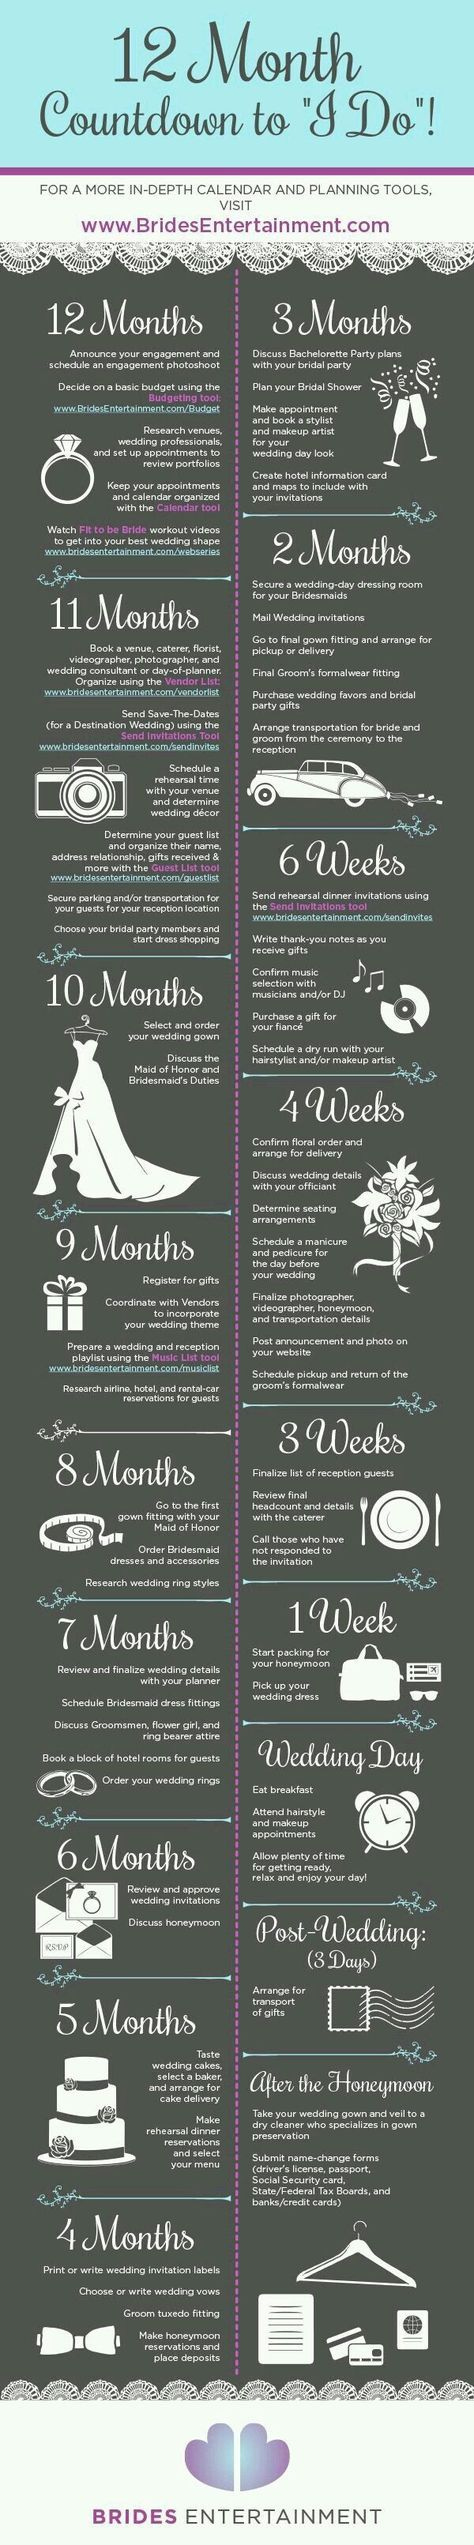 useful wedding planning infographics to give some ideas and tips